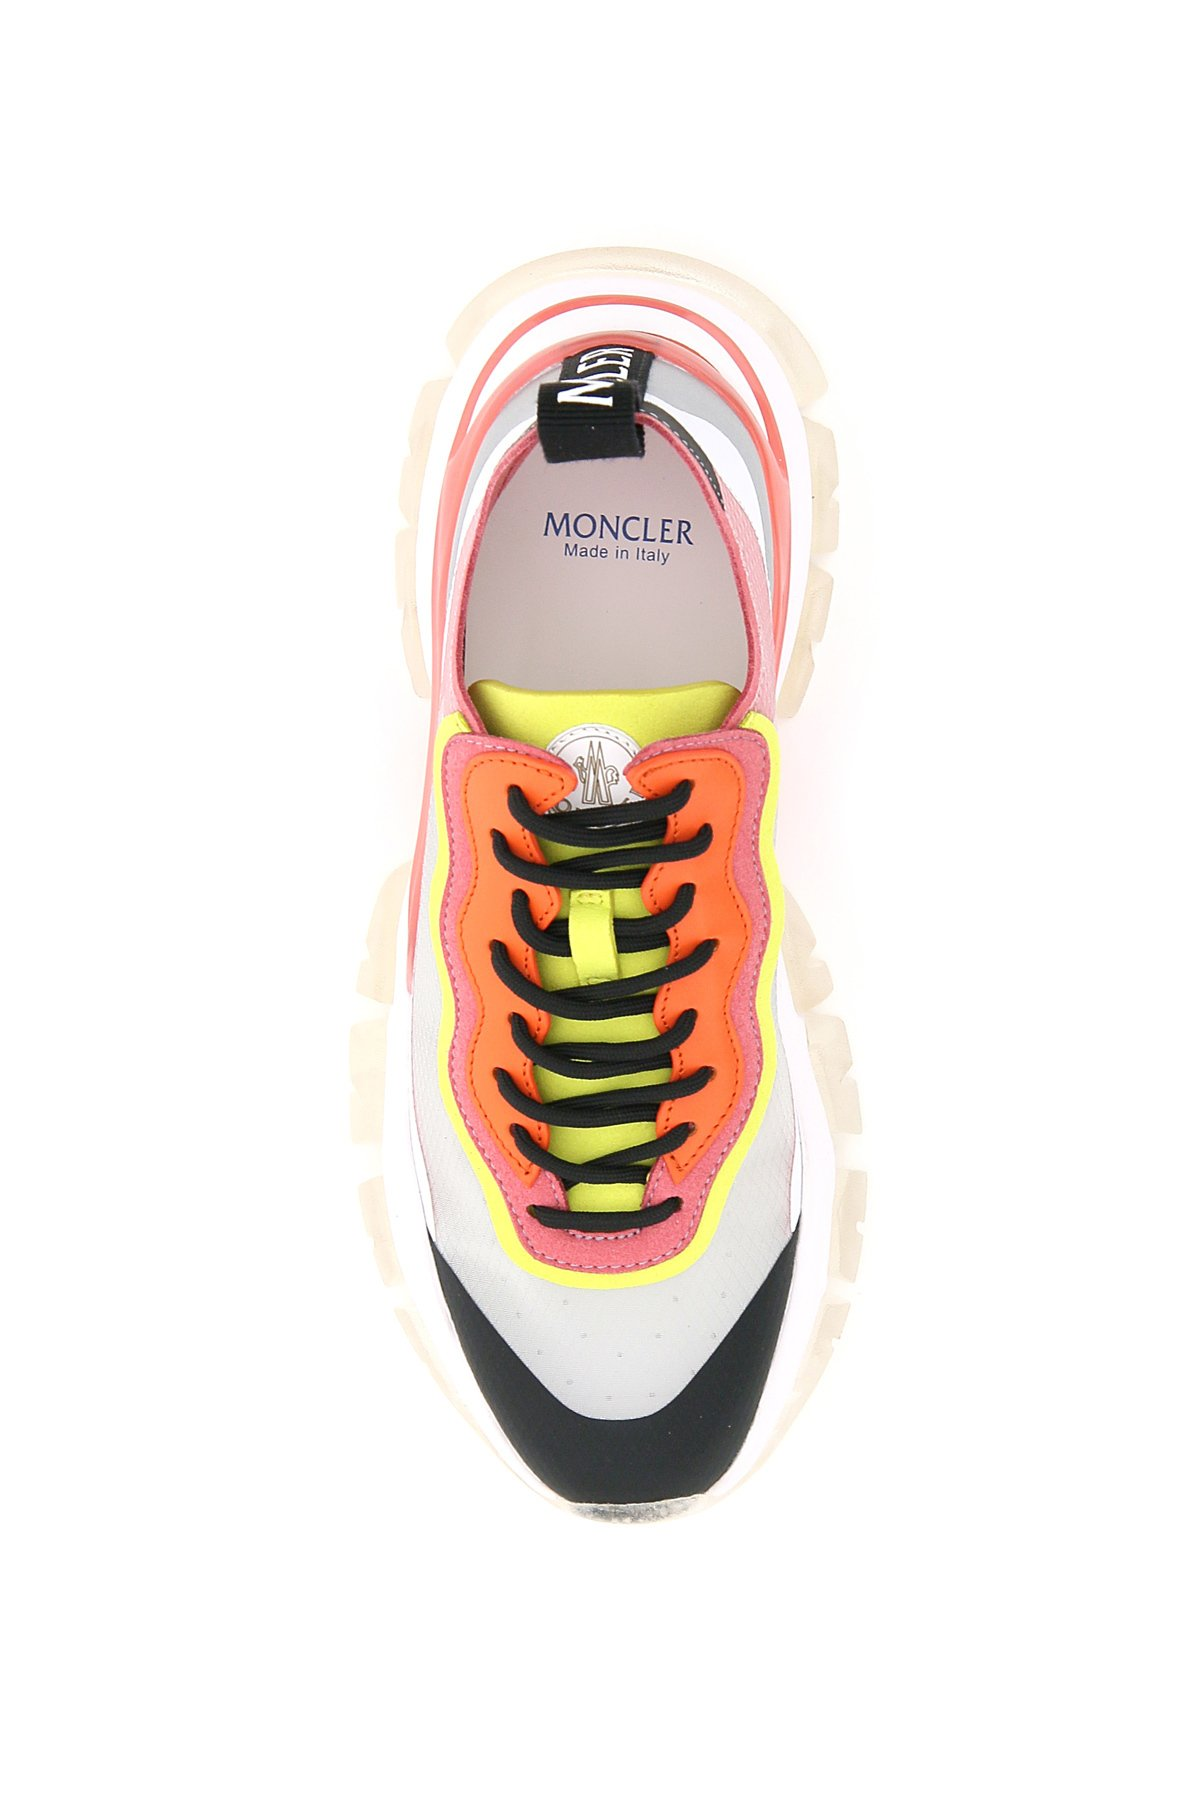 Moncler basic sneakers leave no trace light